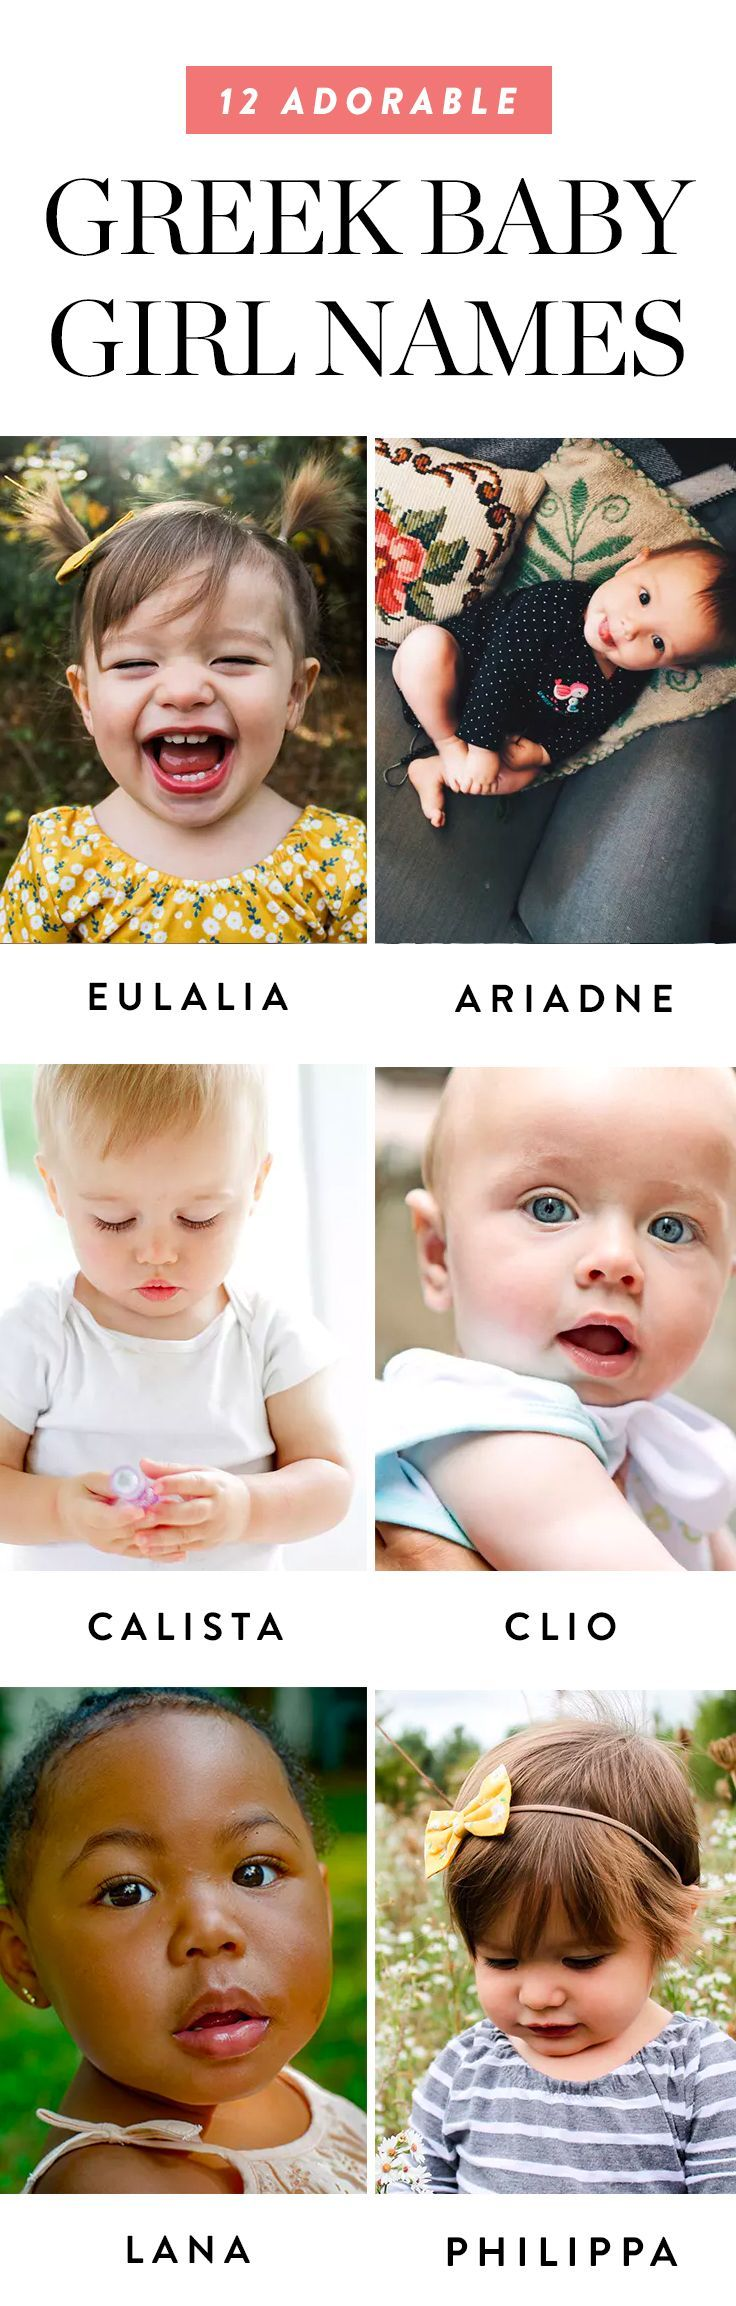 Italian Boy Name: 12 Adorable Greek Baby Girl Names That Will Make You Say